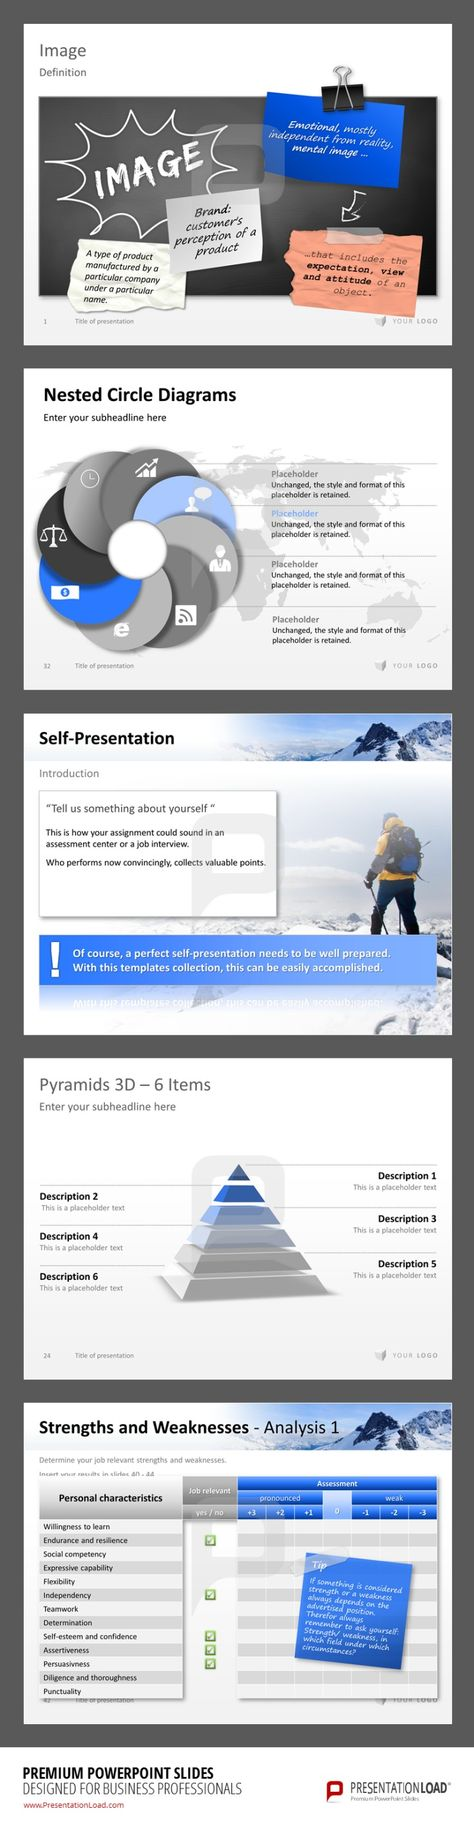 Professional Powerpoint Template Premium Powerpoint Slides For